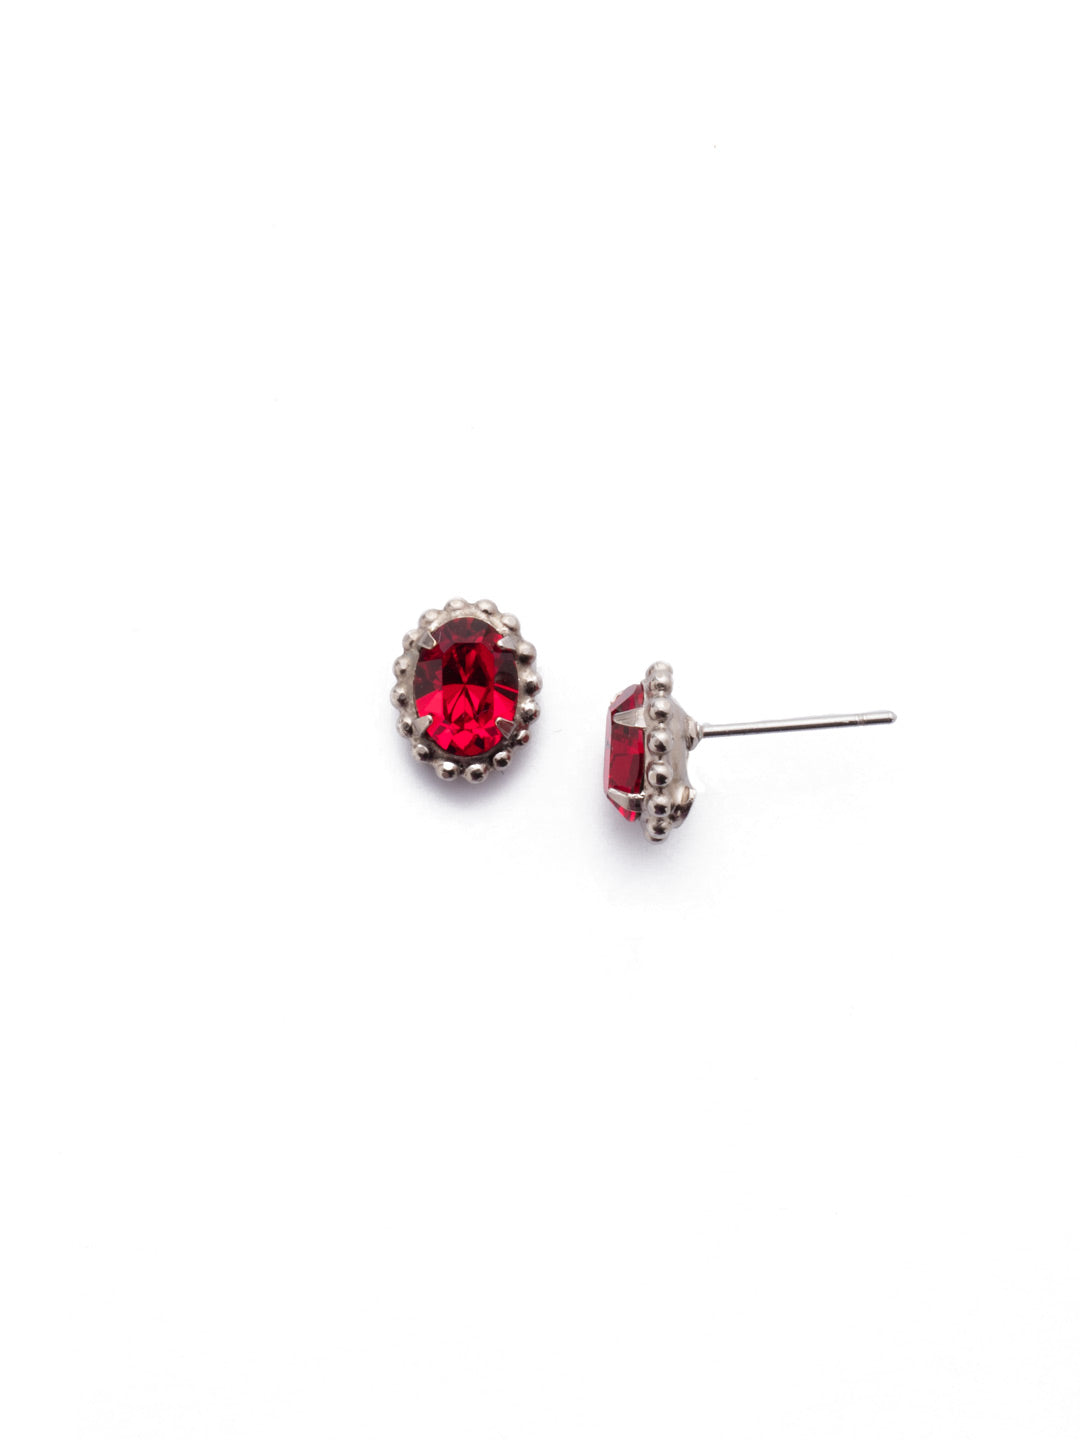 Maisie Stud Earrings - EEH11ASSI